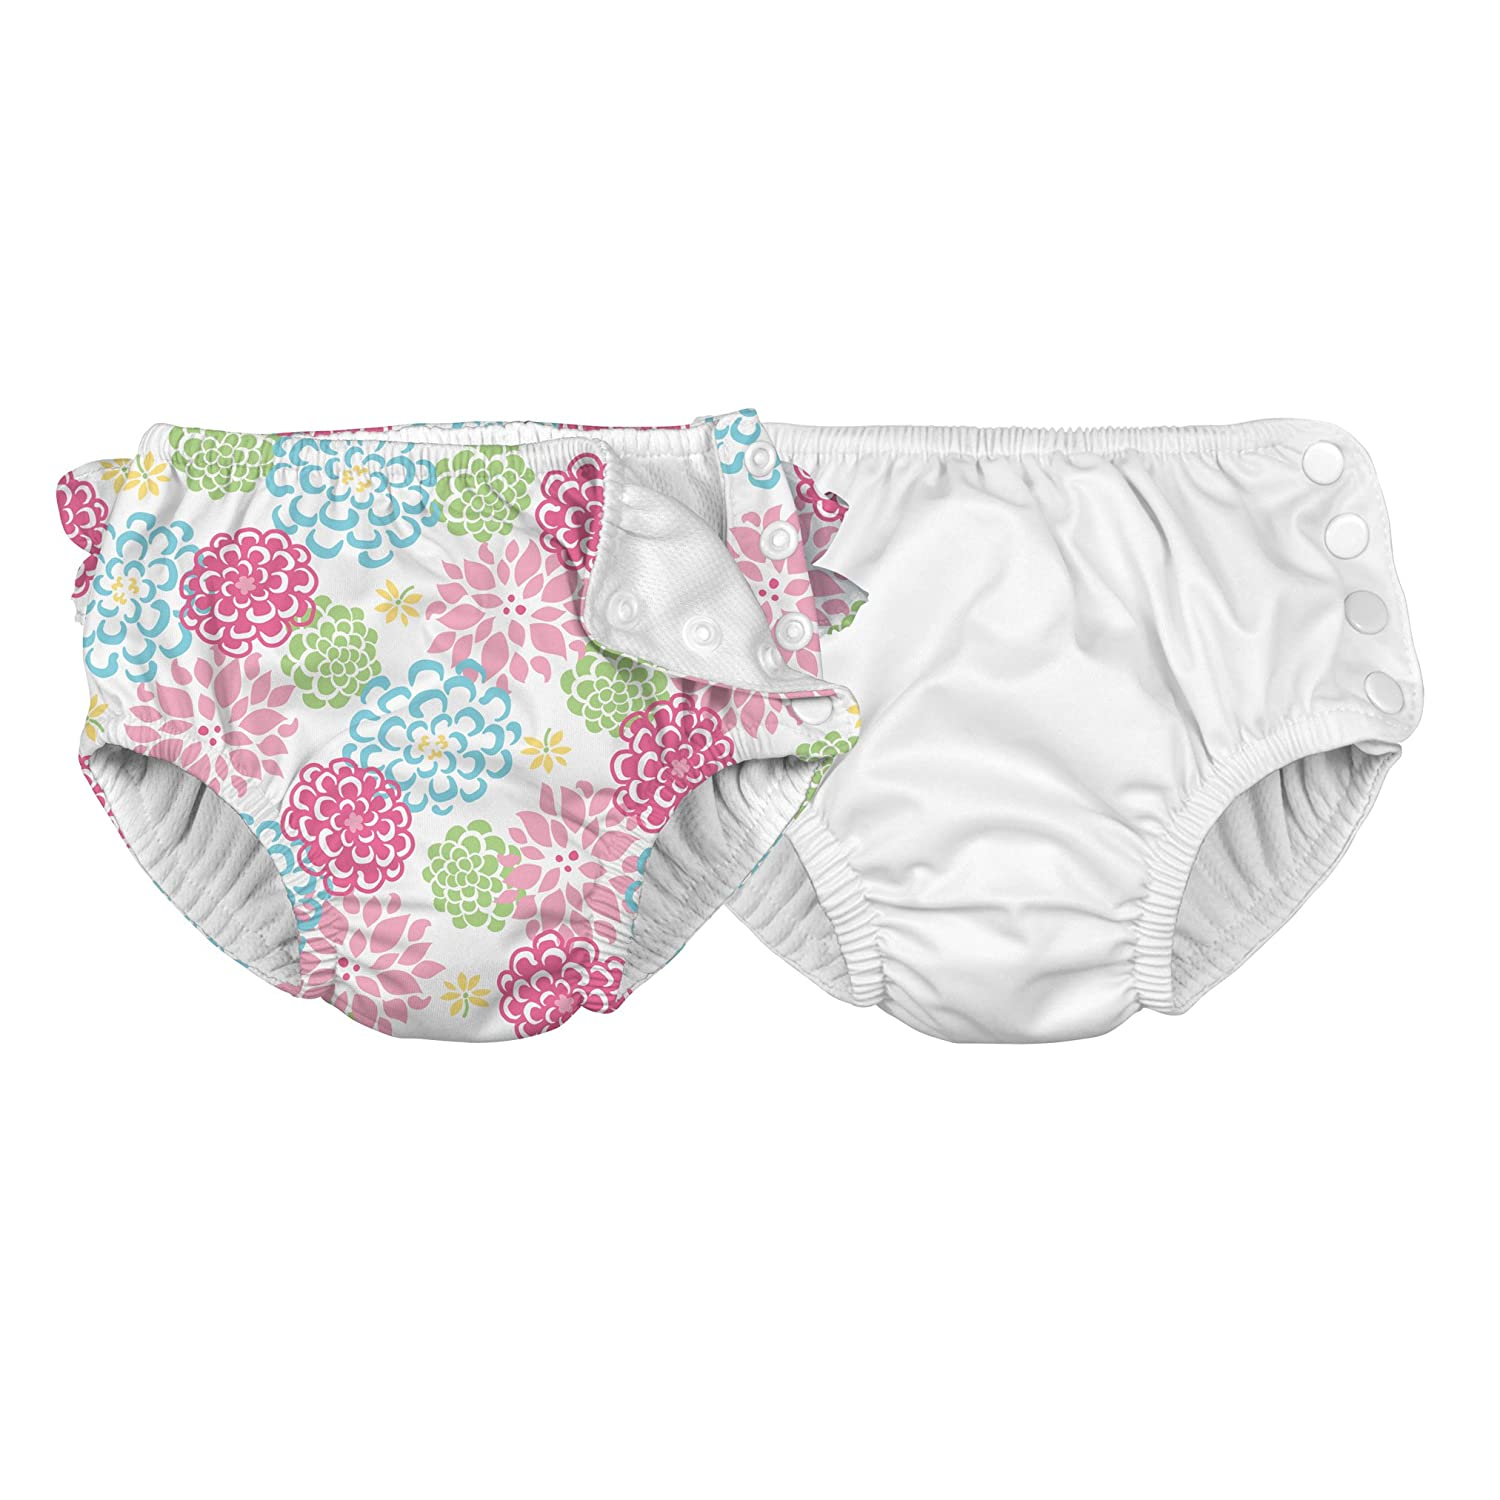 2pk | No other diaper necessary UPF 50+ protection i play by green sprouts Snap Reusable Swim Diaper